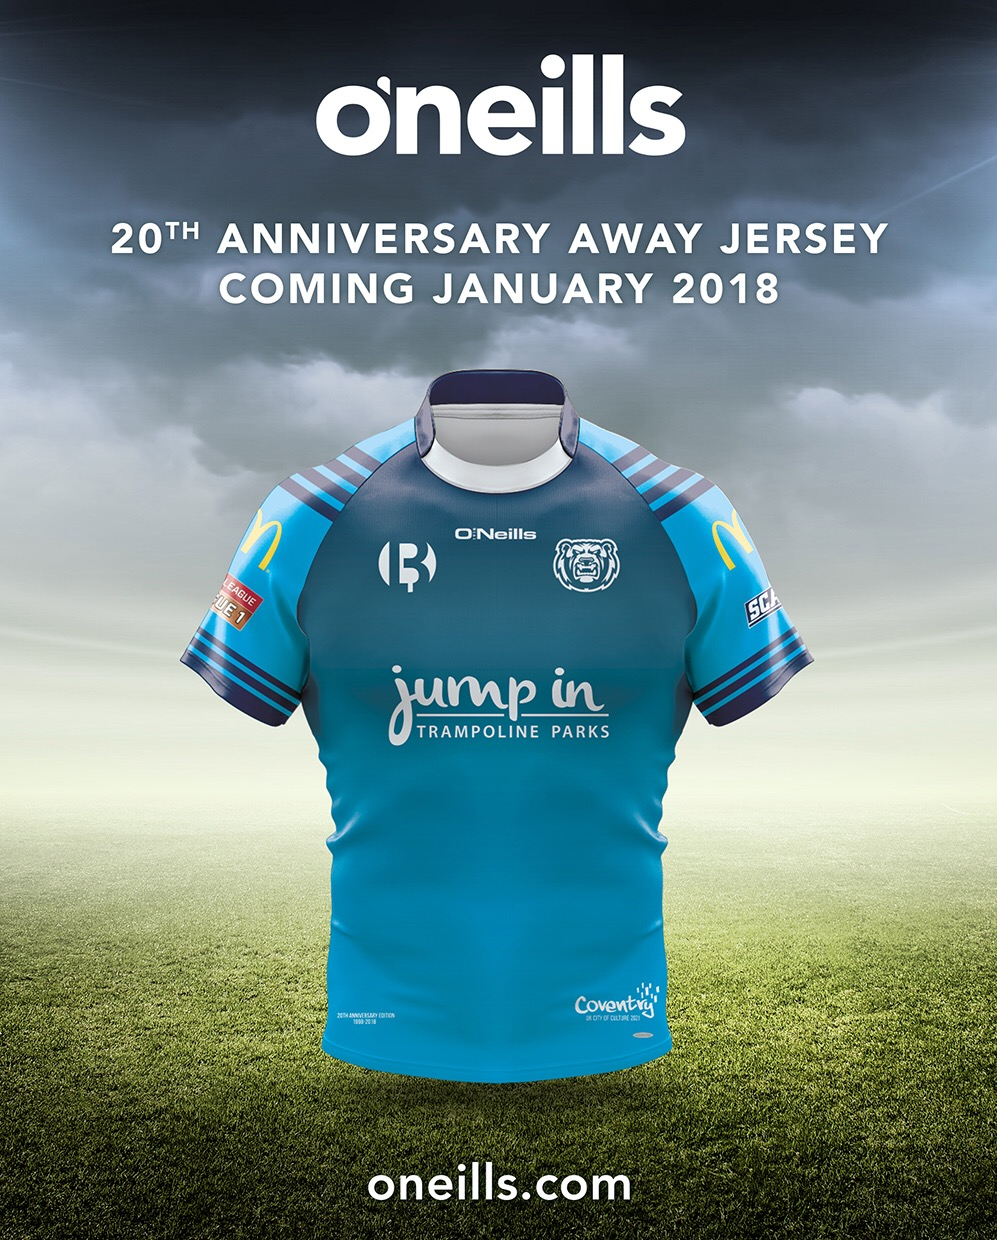 Coventry Bears 2018 Alternative Jersey